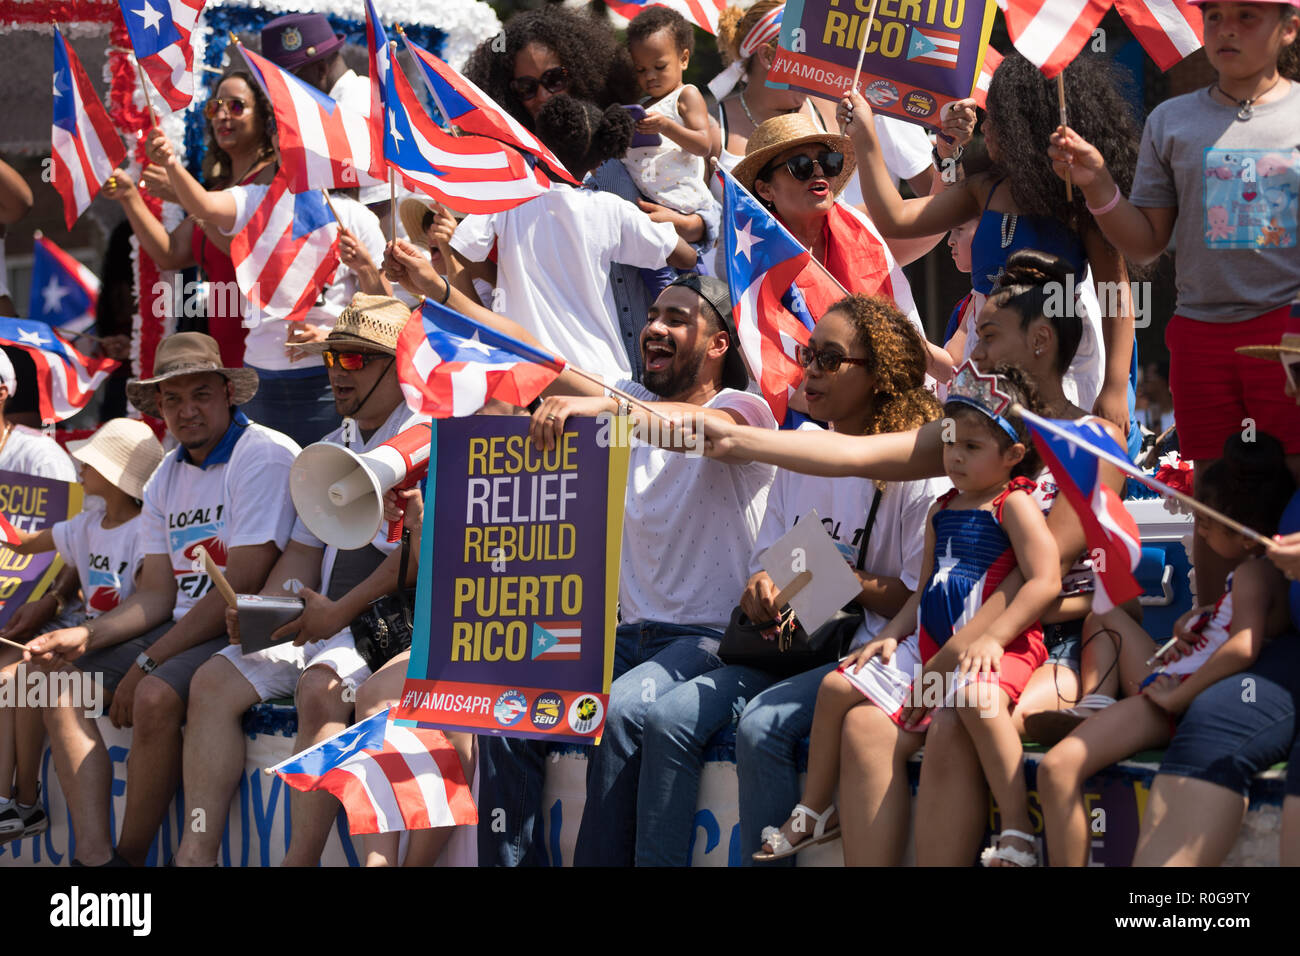 Chicago, Illinois, USA - June 16, 2018: The Puerto Rican People's Parade